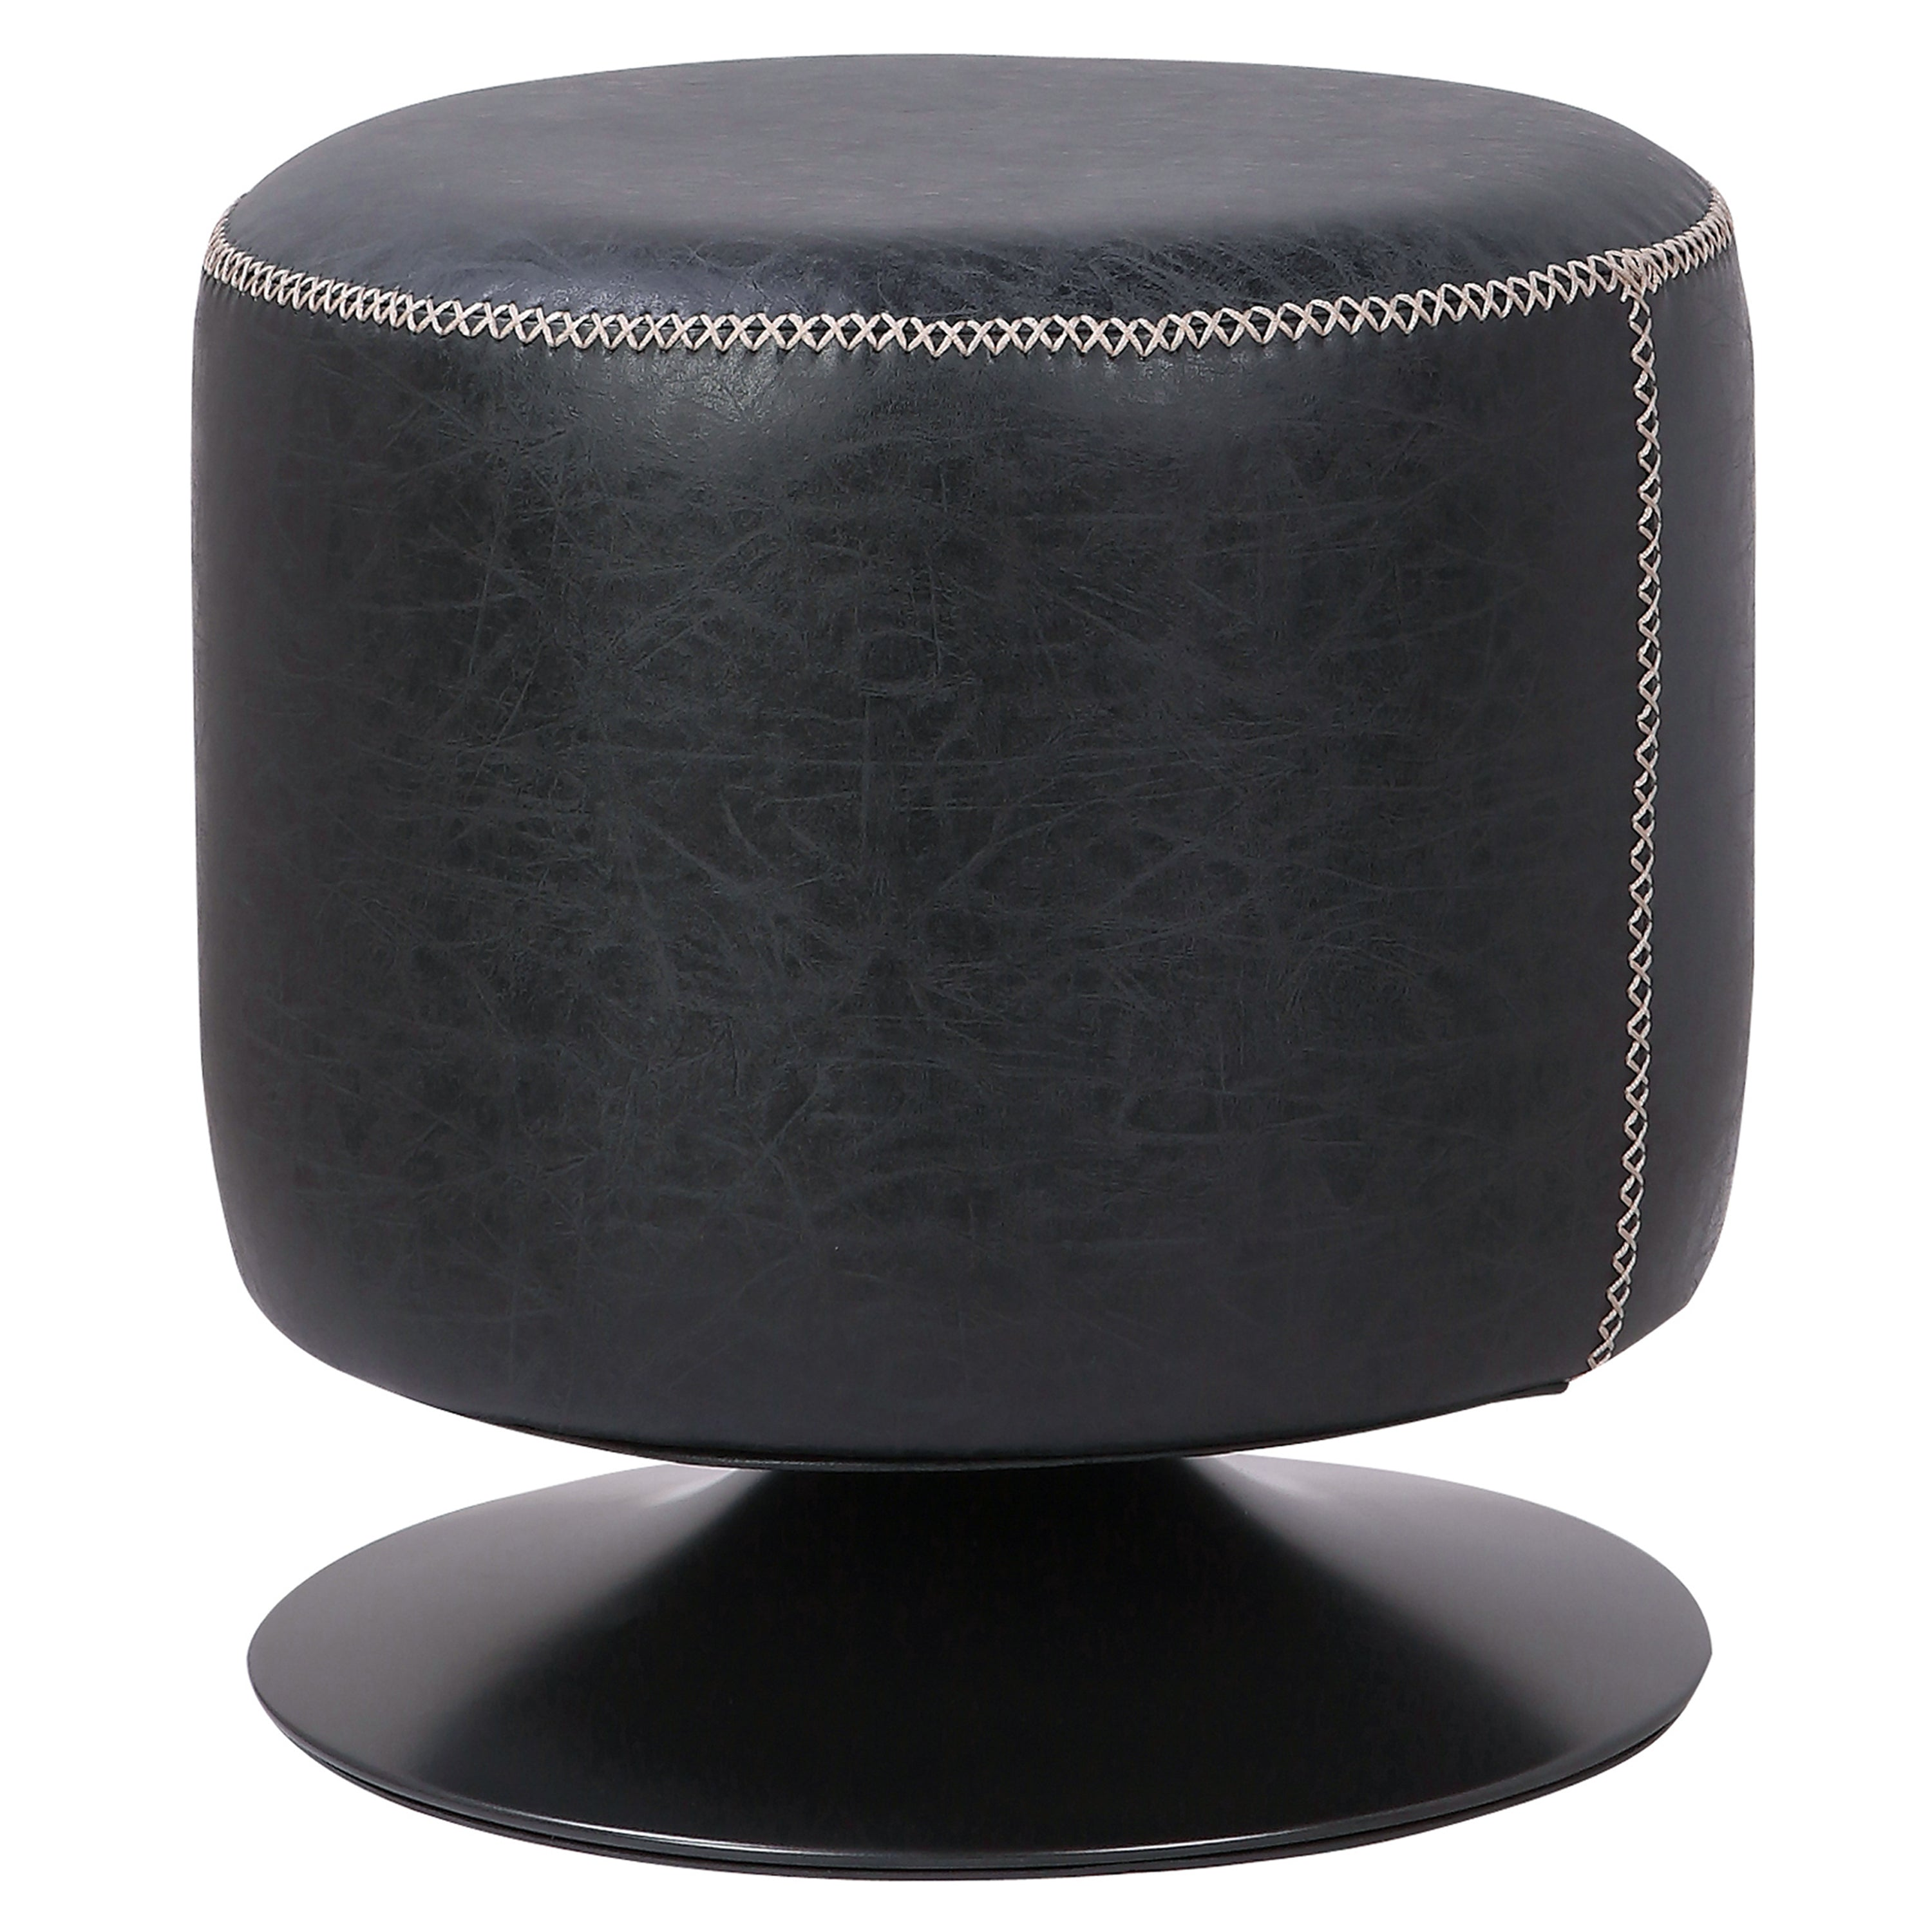 Awe Inspiring Buy New Pacific Direct 9300034 240 Gaia Pu Leather Round Ottoman Vintage Black At Contemporary Furniture Warehouse Beatyapartments Chair Design Images Beatyapartmentscom